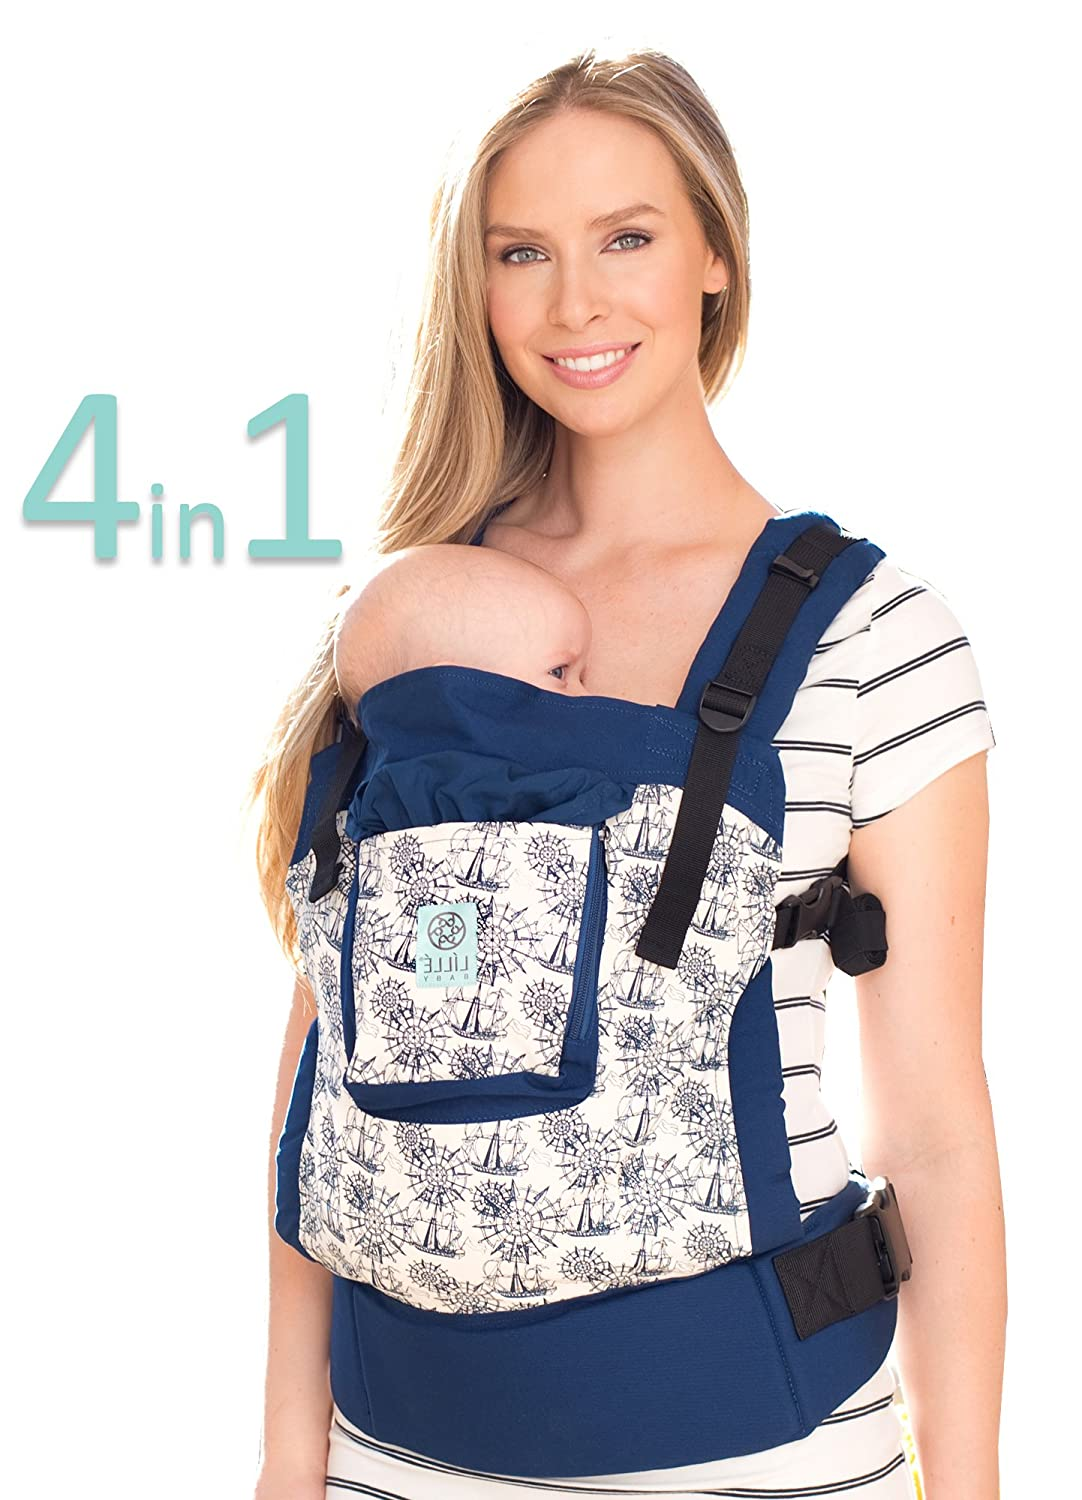 L LL baby 4-in-1 Essentials Original Ergonomic Baby Child Carrier, Blue Maritime – 100 Cotton